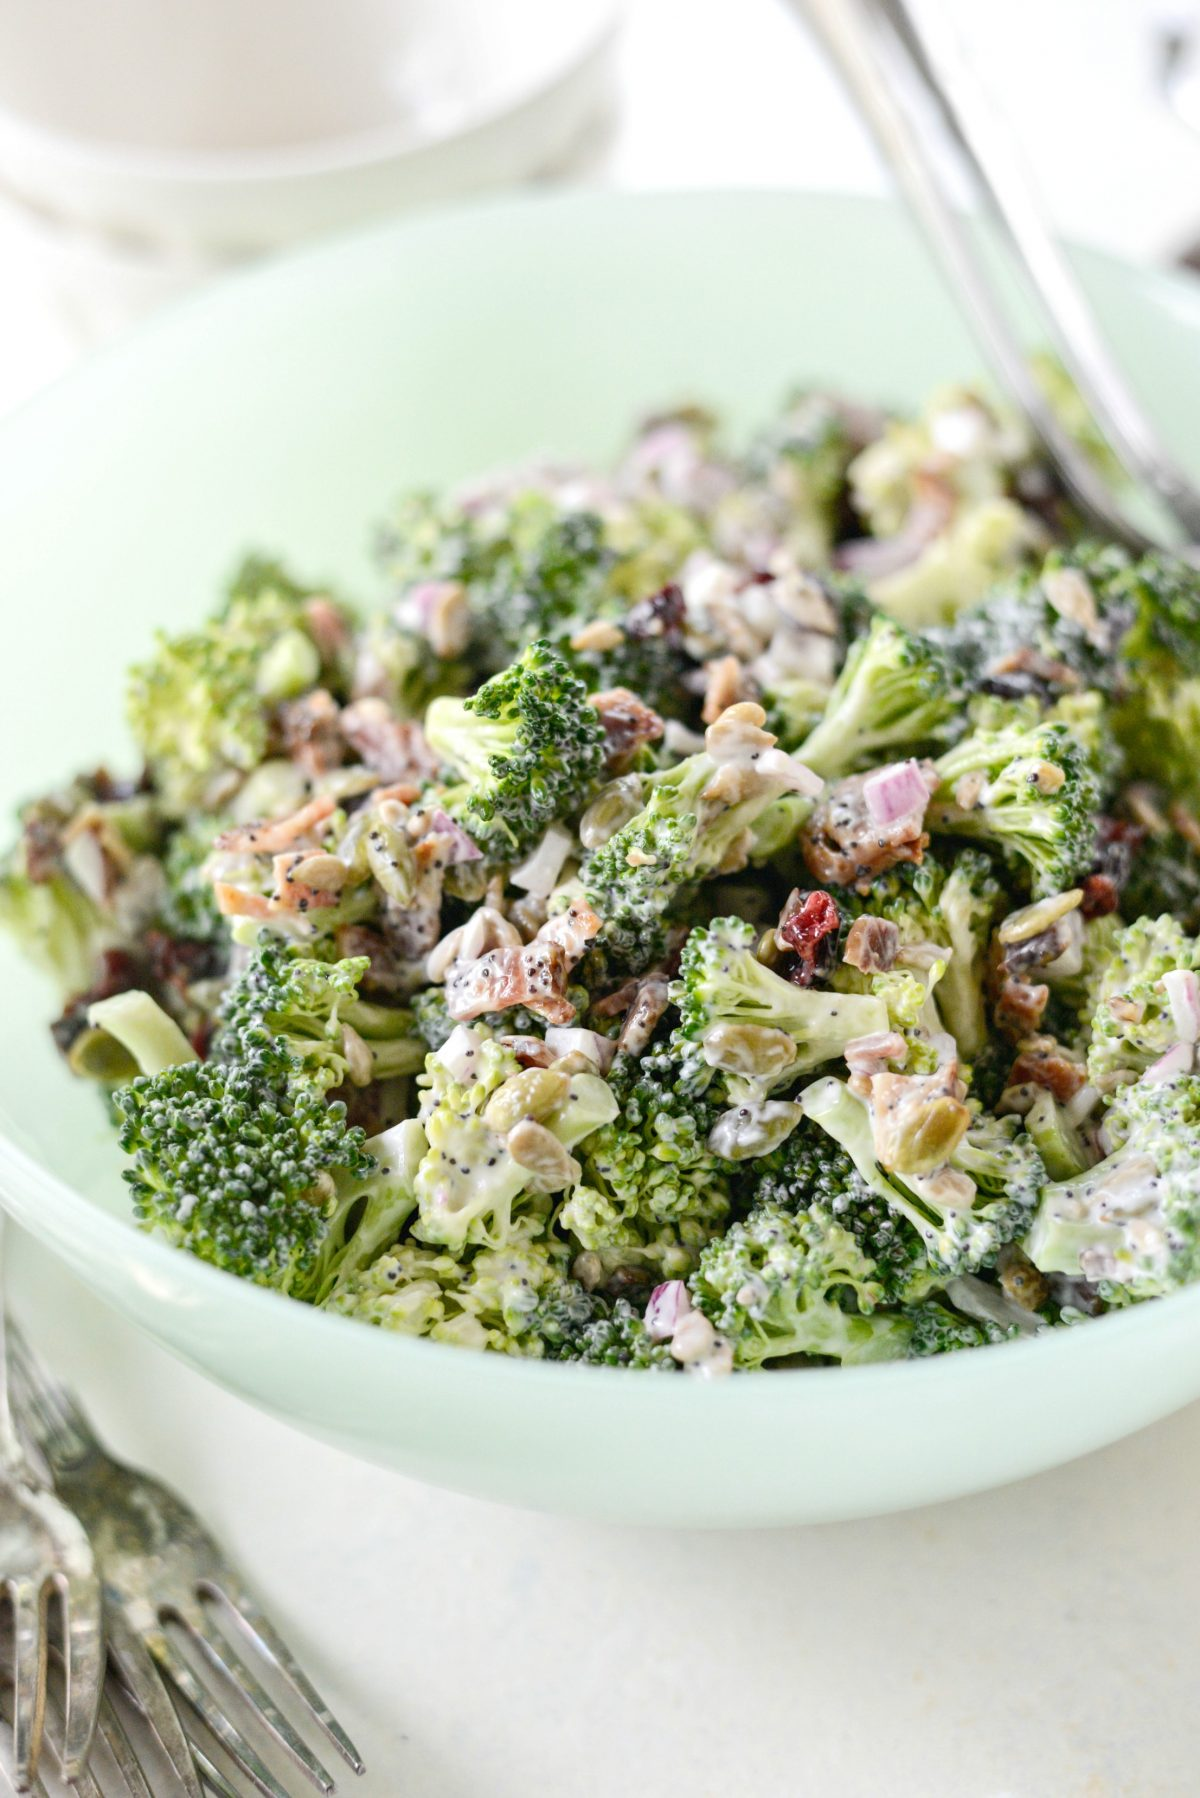 Broccoli Crunch Salad